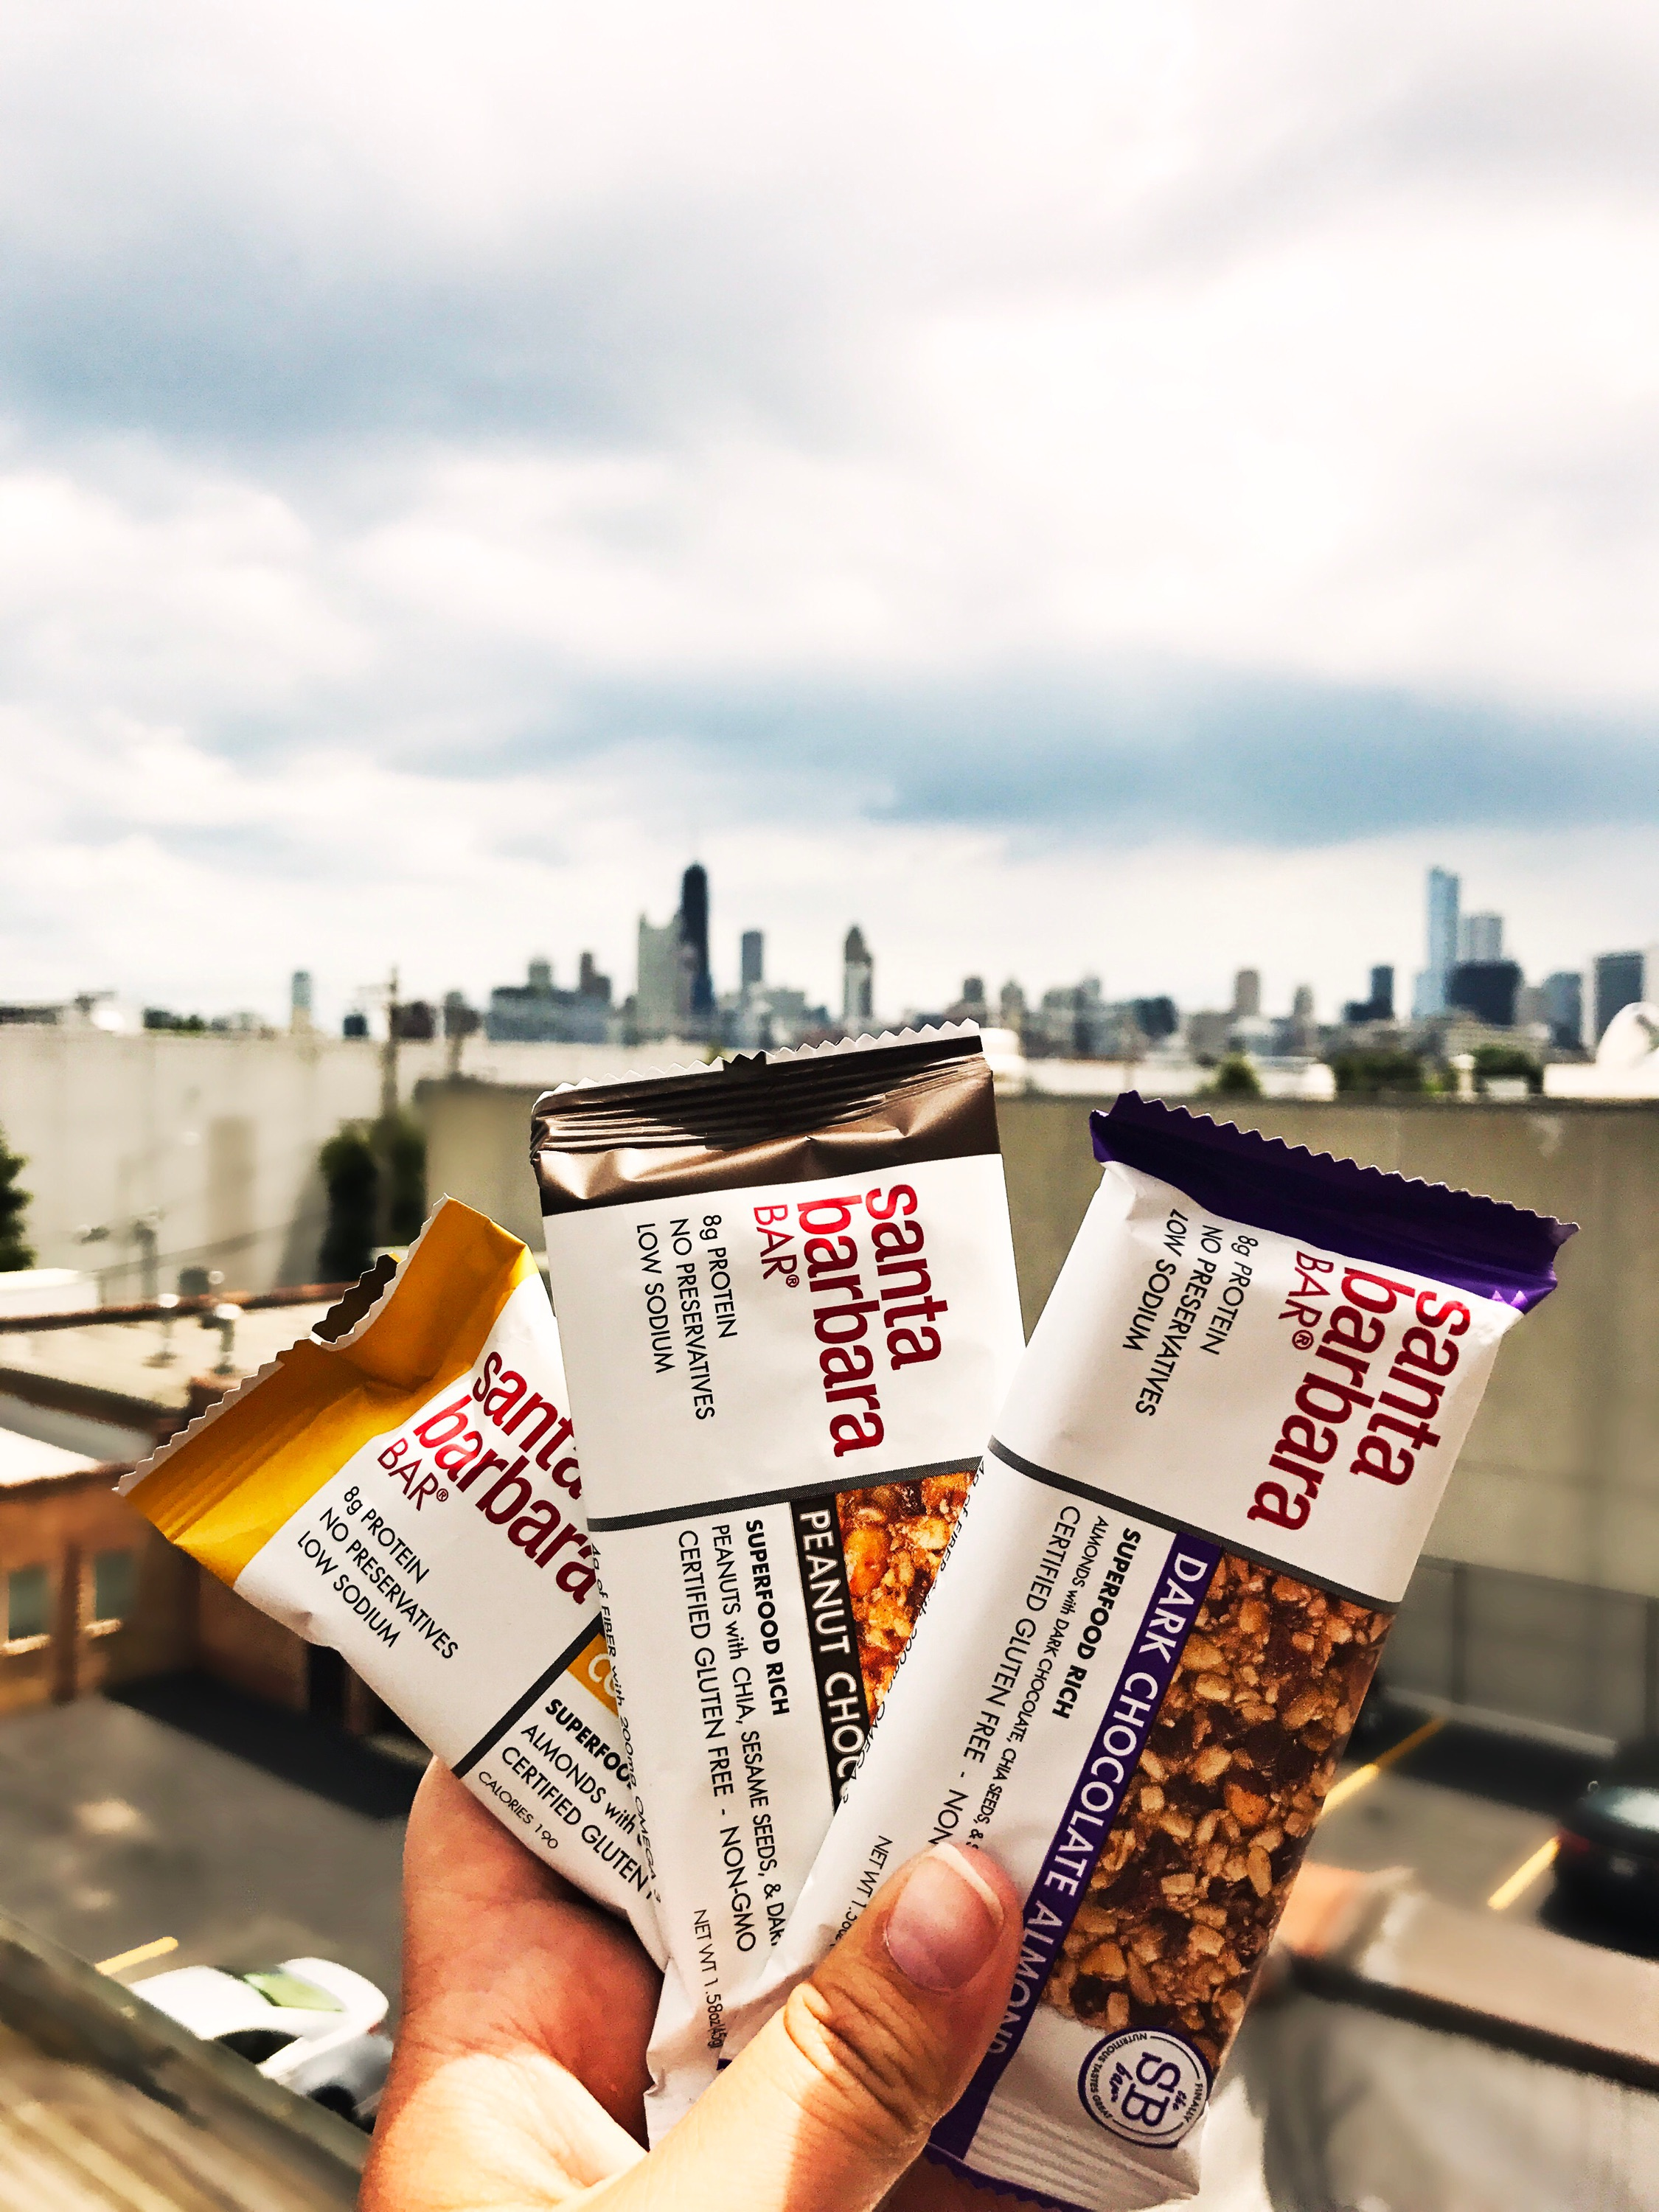 Bars Pictured from left to right:Coconut Almond, Peanut Chocolate Cherry, and Dark Chocolate Almond